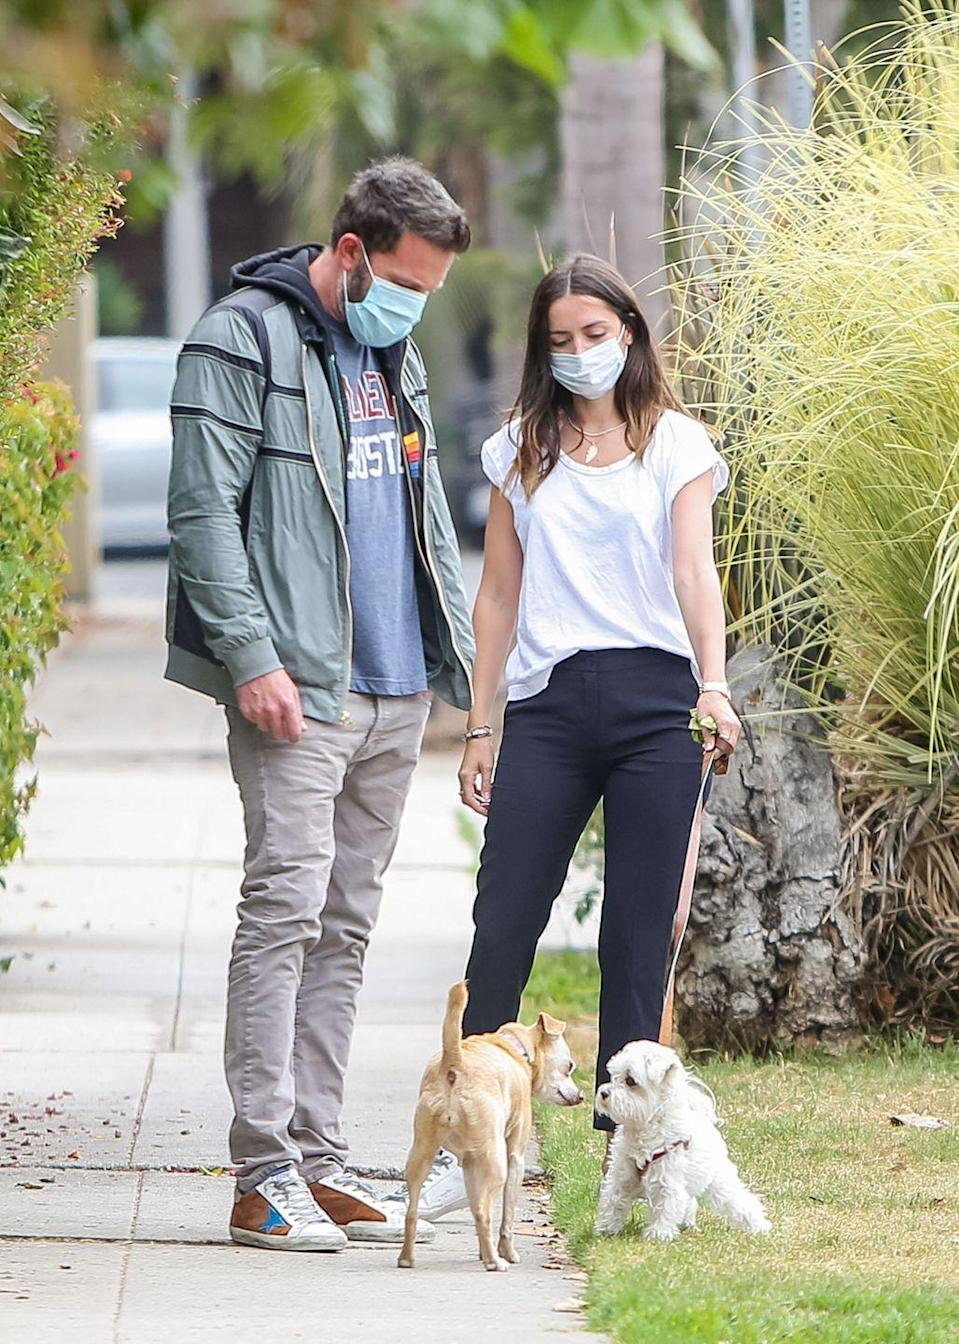 """<p>No quarantine couple has thrived off PR quite like Ben Affleck's and Ana de Armas' relationship. The couple met on the set of their upcoming film <em>Deep Water</em>. After a getaway to Cuba in March, the pair <a href=""""https://www.usmagazine.com/celebrity-news/pictures/ben-affleck-and-ana-de-armas-relationship-timeline/march-13-2020/"""" rel=""""nofollow noopener"""" target=""""_blank"""" data-ylk=""""slk:started quarantining together"""" class=""""link rapid-noclick-resp"""">started quarantining together</a>—except they've been seen out together nearly once a day. The couple takes their dogs for a walk every day with Dunkin' Donuts coffee in hand. </p><p>Ana de Armas even <a href=""""https://www.thecut.com/2020/04/ana-de-armas-blocks-fan-account-on-twitter.html"""" rel=""""nofollow noopener"""" target=""""_blank"""" data-ylk=""""slk:blocked a fan Twitter account"""" class=""""link rapid-noclick-resp"""">blocked a fan Twitter account</a> that got a little, um, creative with captions to the never-ending supply of photos. Hey, I'll take any drama I can get.</p>"""